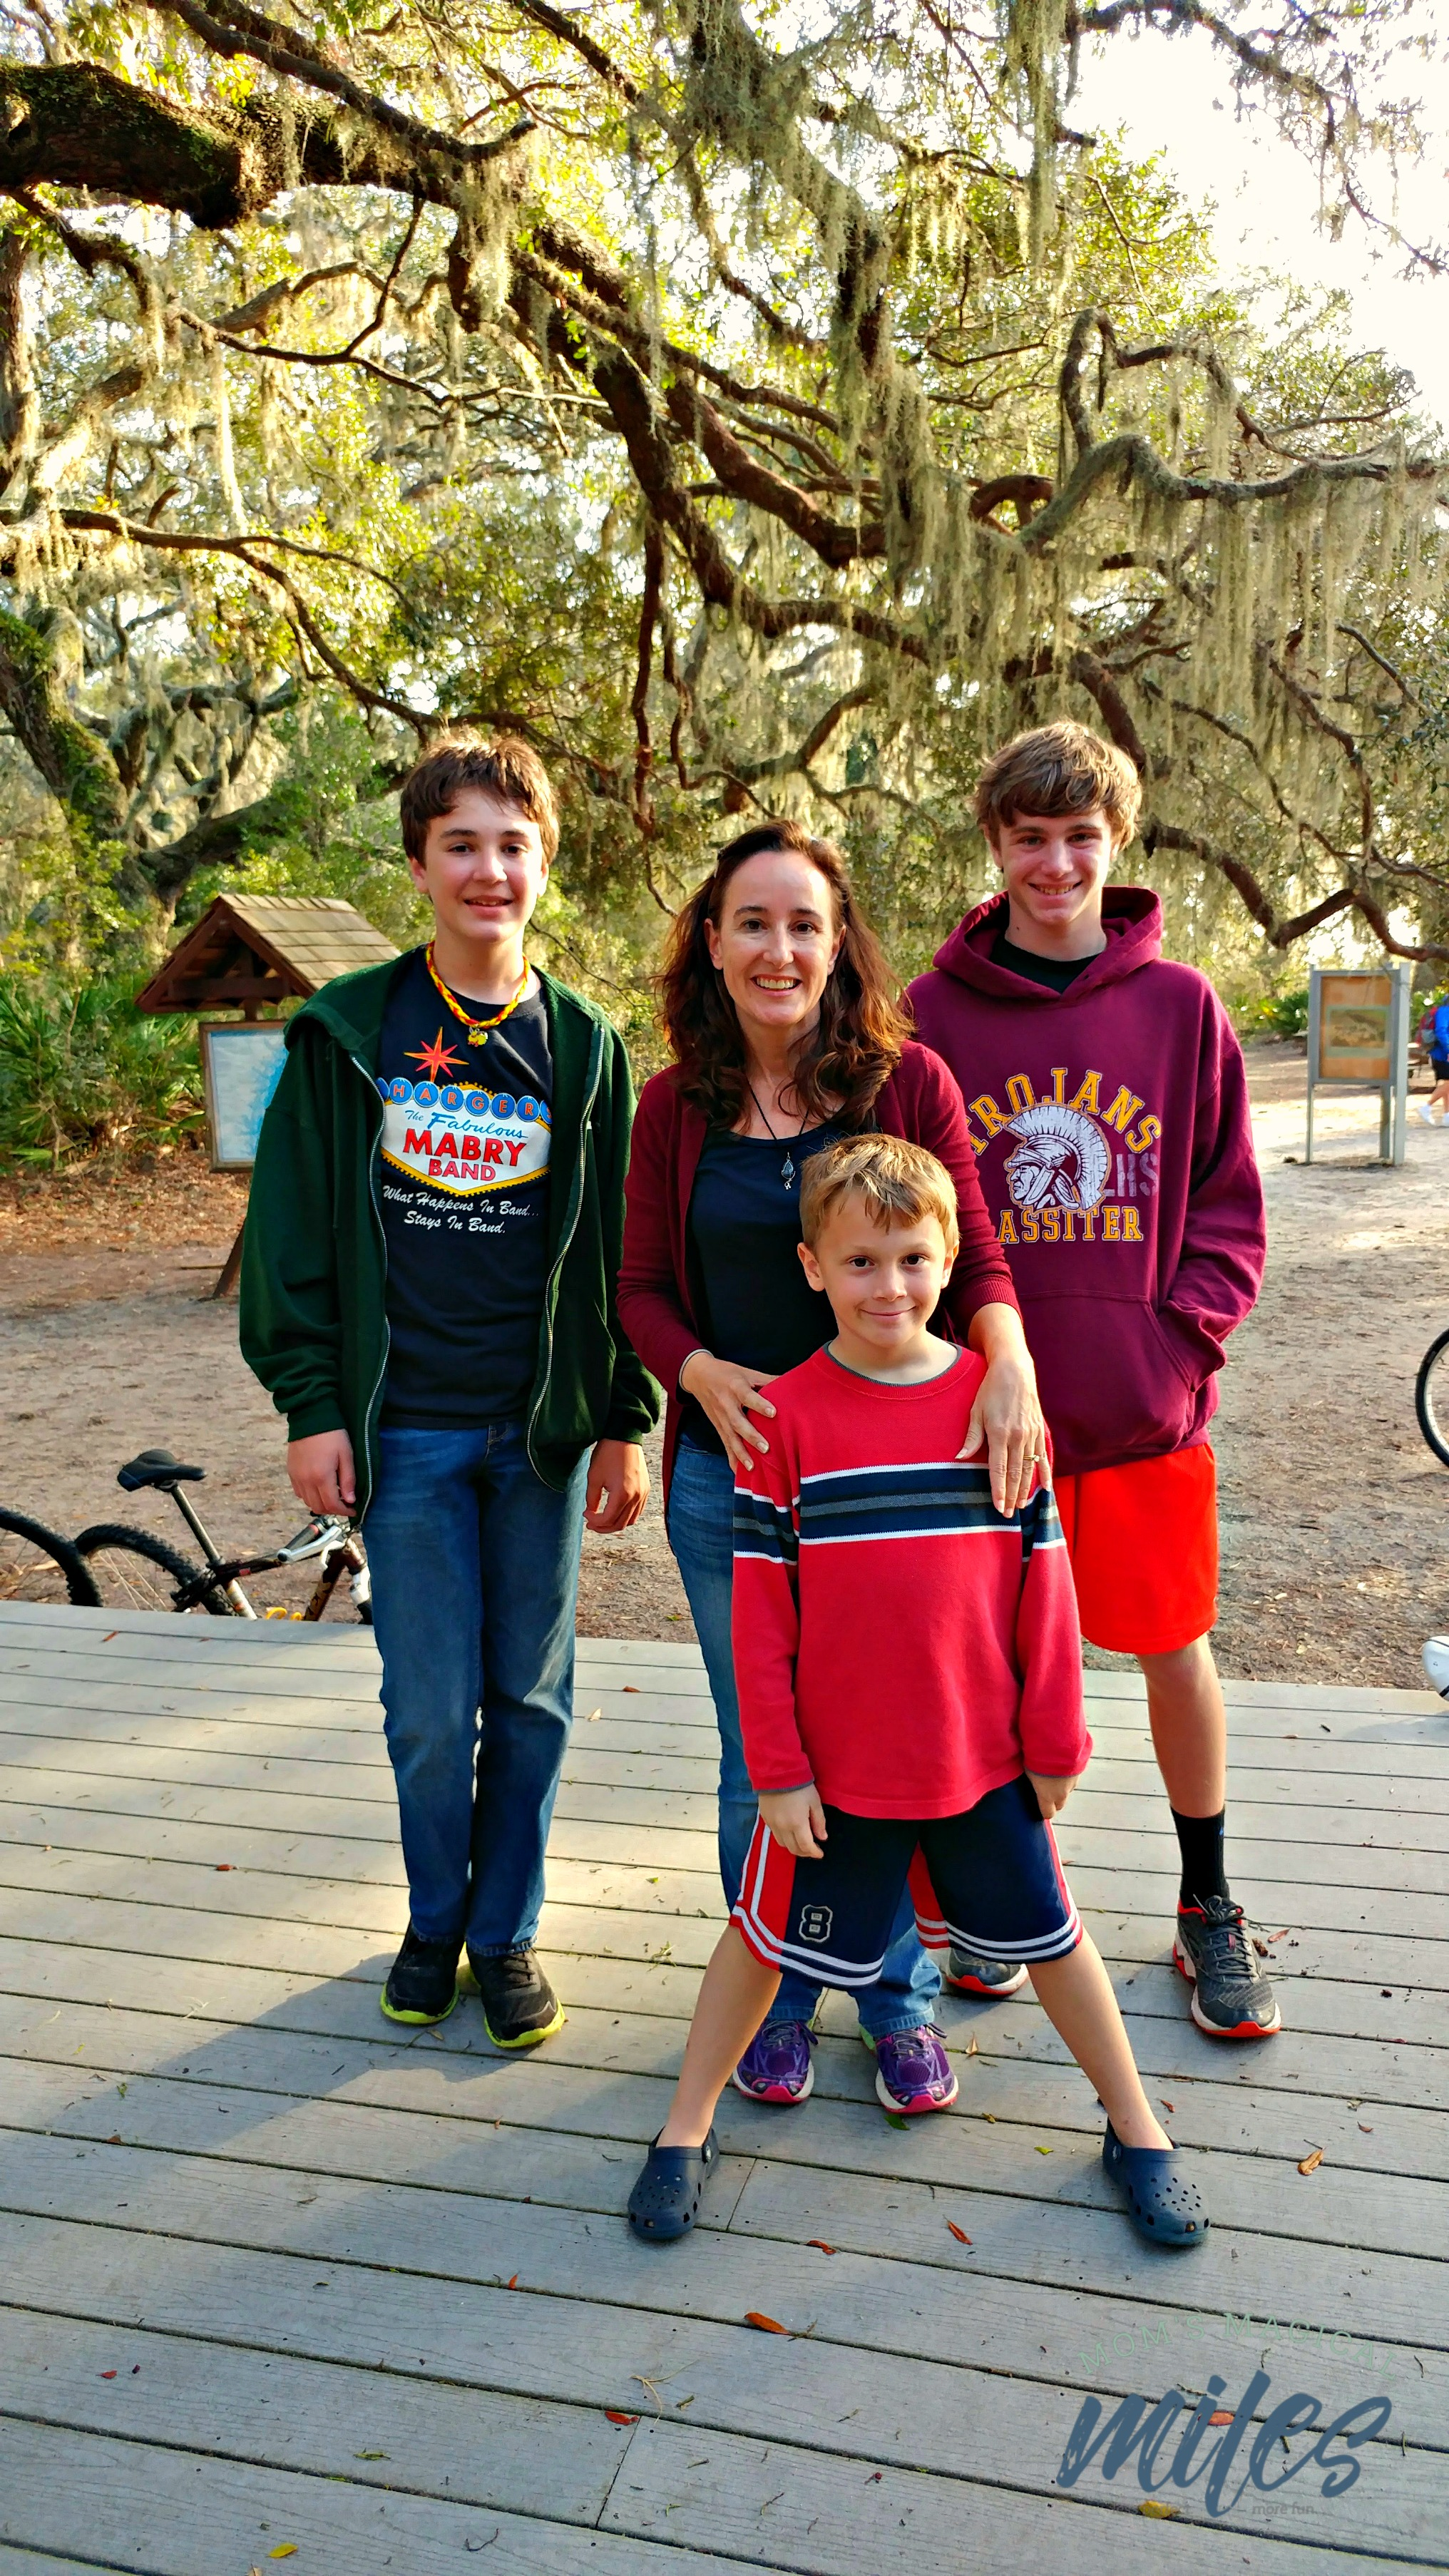 Cumberland Island on the Georgia coast is truly made for families to unplug and reconnect with each other.